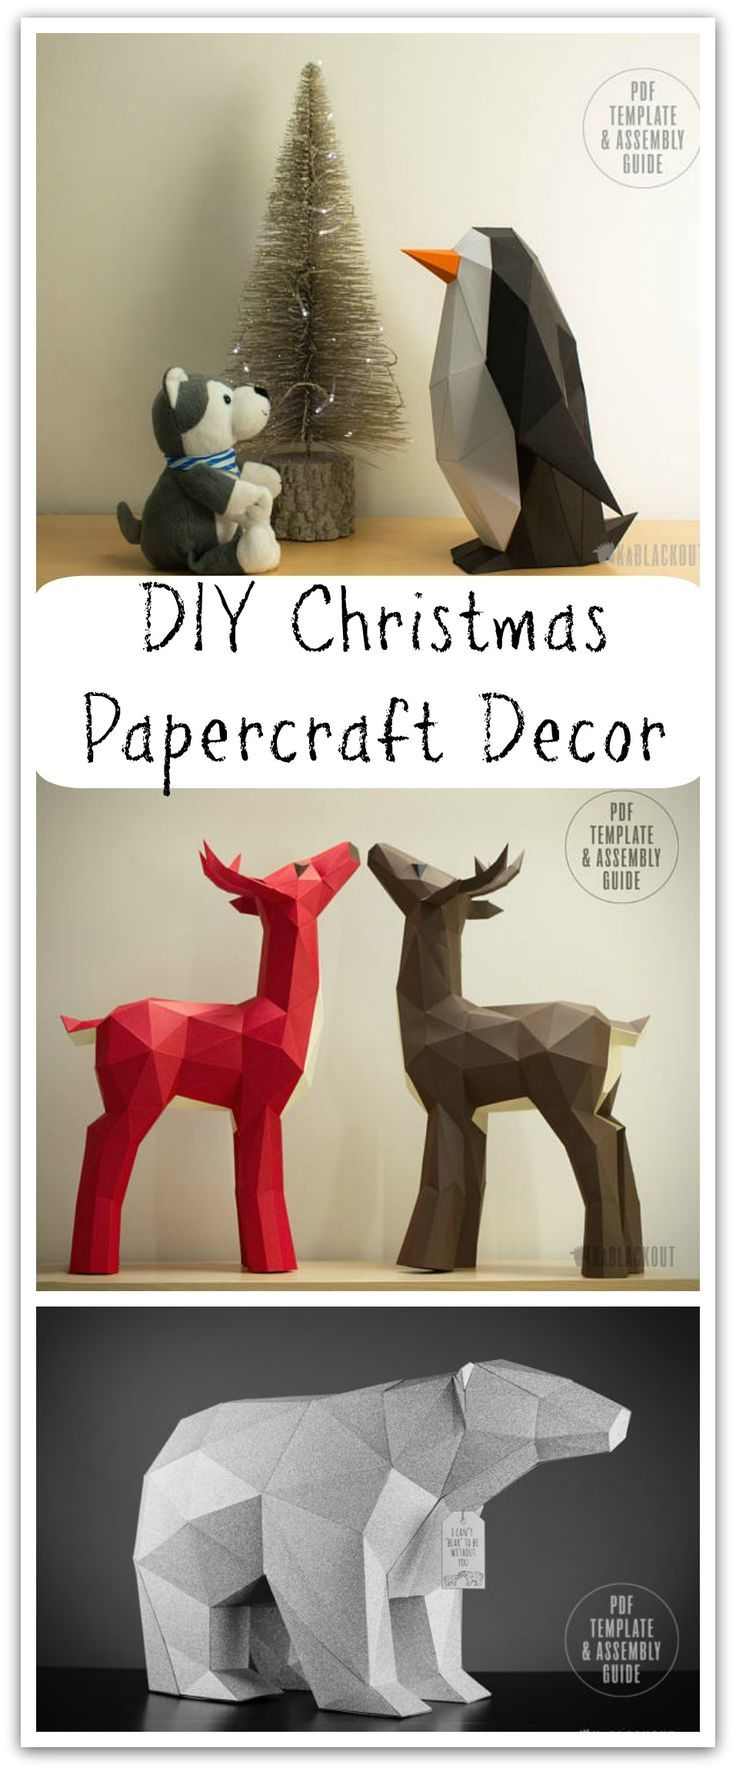 Low Poly Papercraft Templates | DIY PDF Downloads - We design our own unique papercraft templates for you to create beautiful home décor. Christmas Decor Craft, 3D Paper Printable PDF  #ad #affiliate